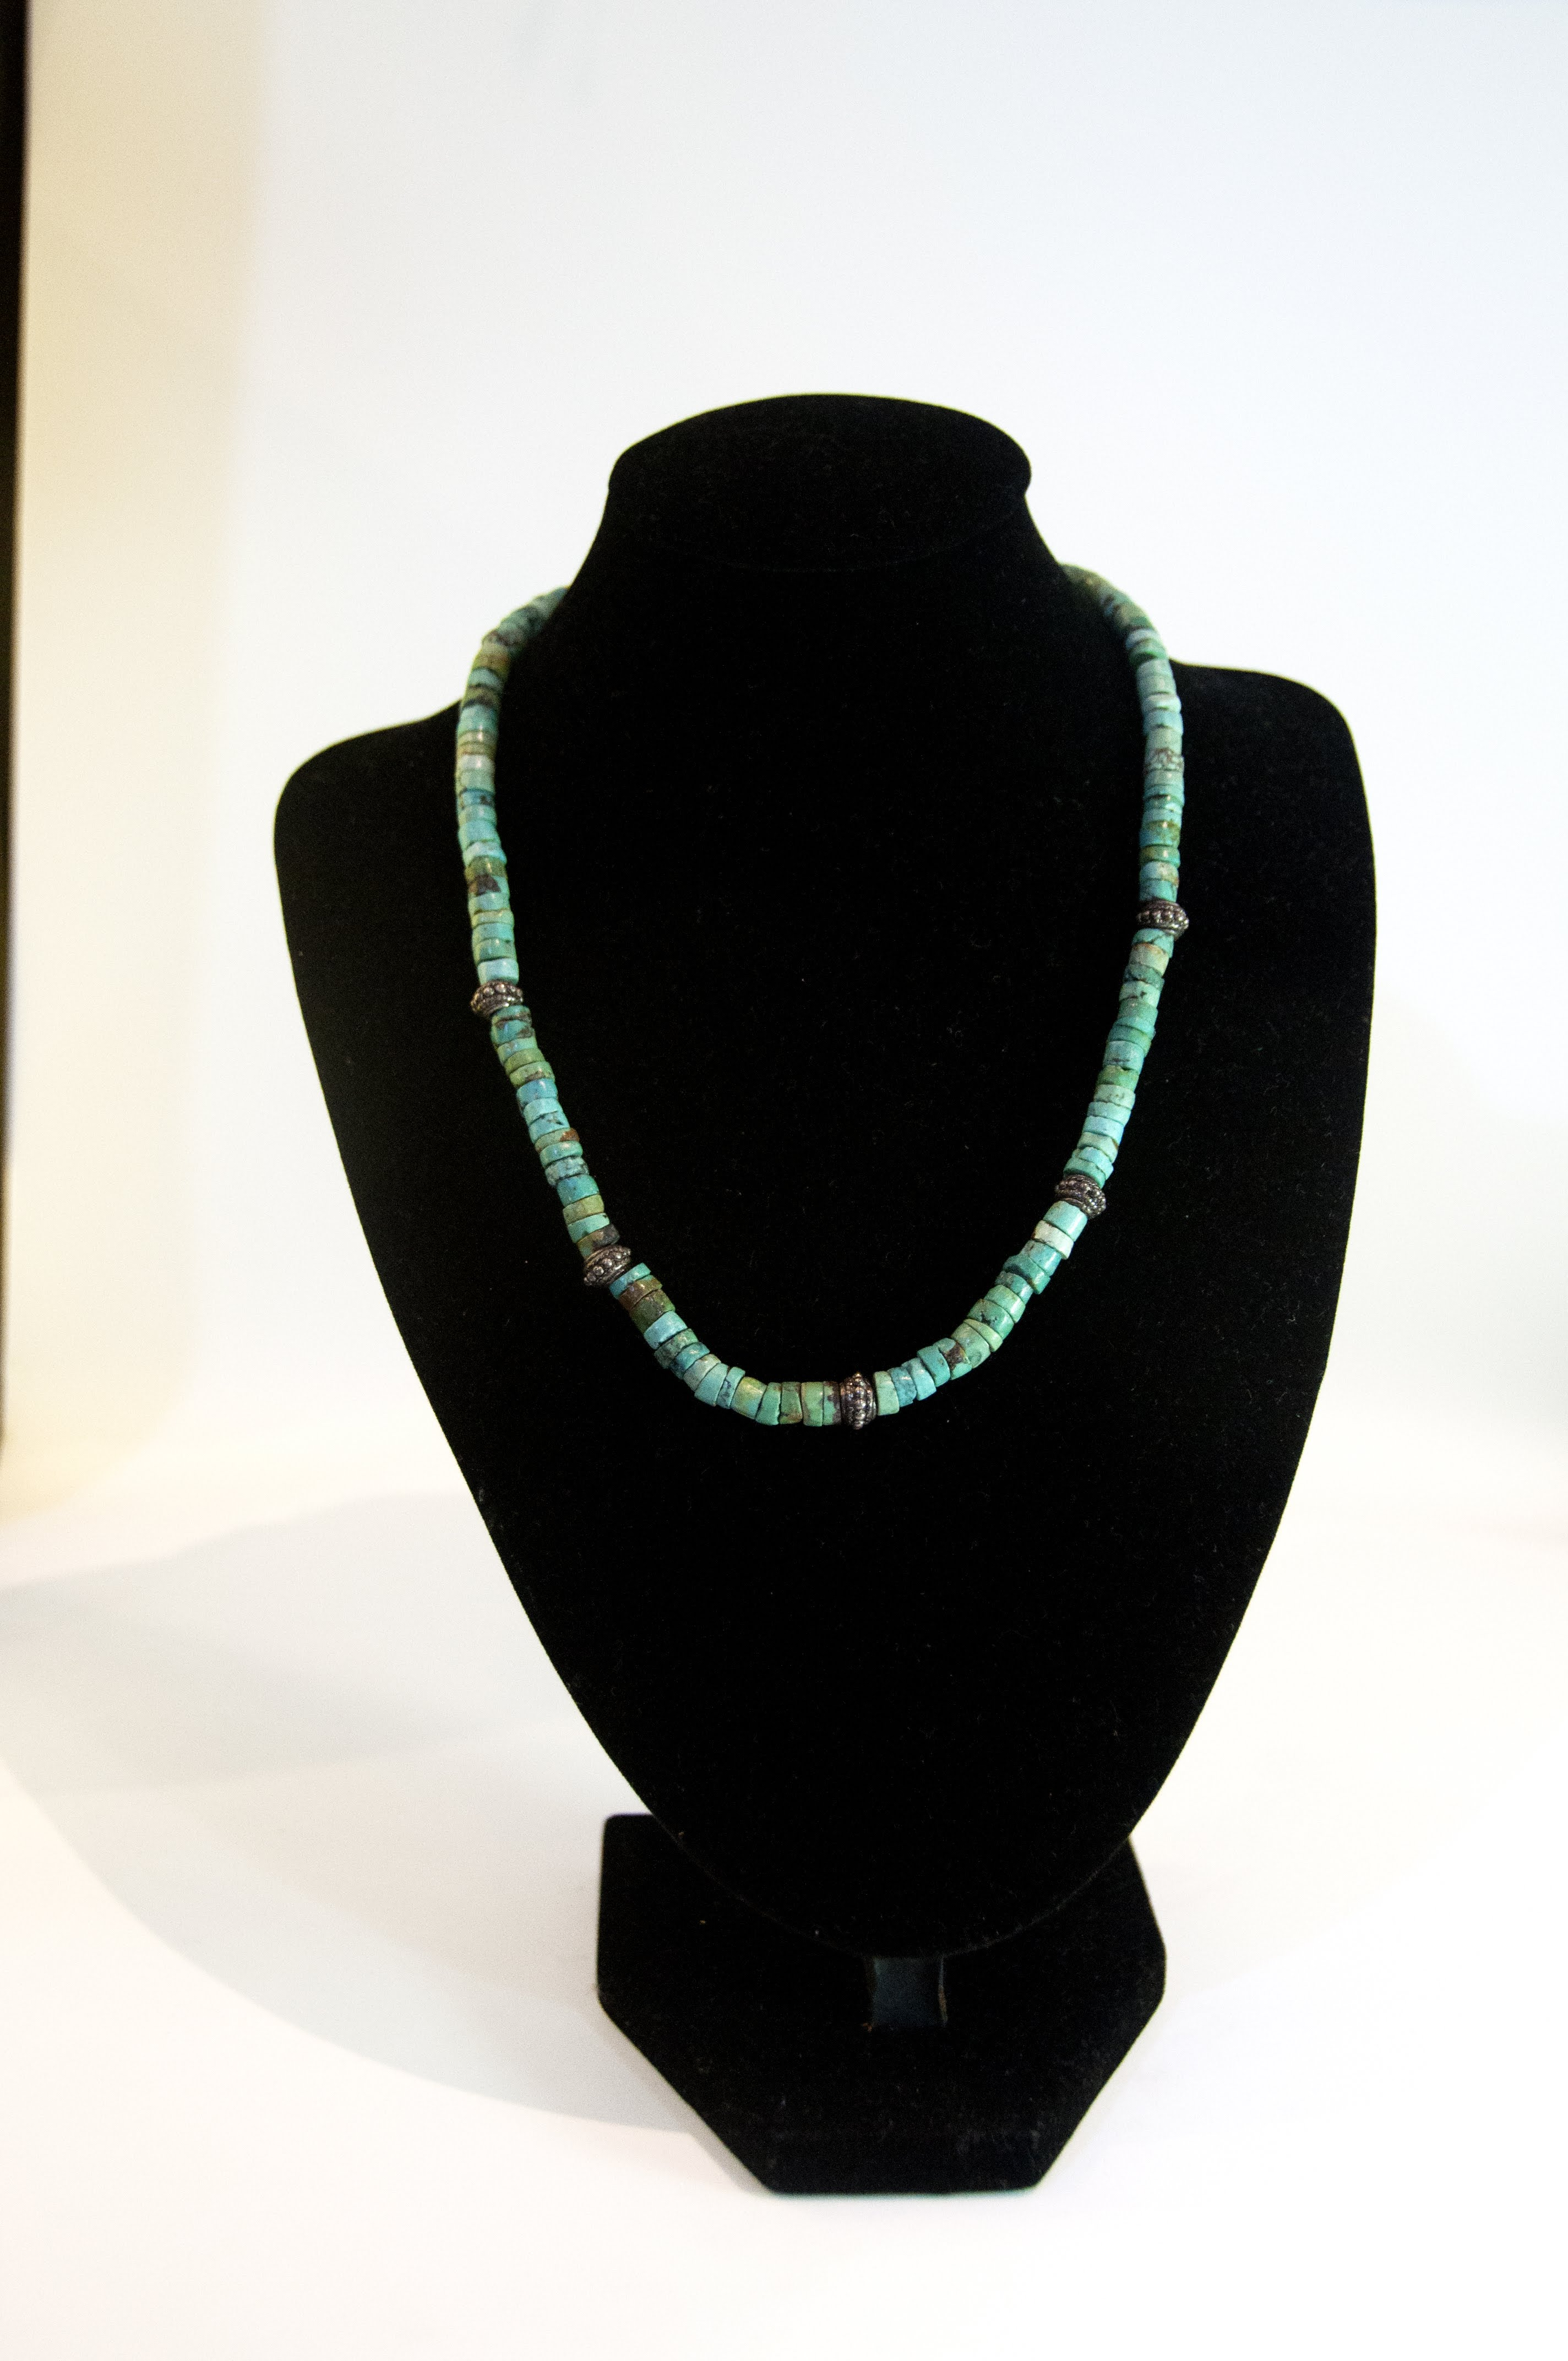 Jewelry Necklace Silver Natural Torquoise Beads 16D 30.03g